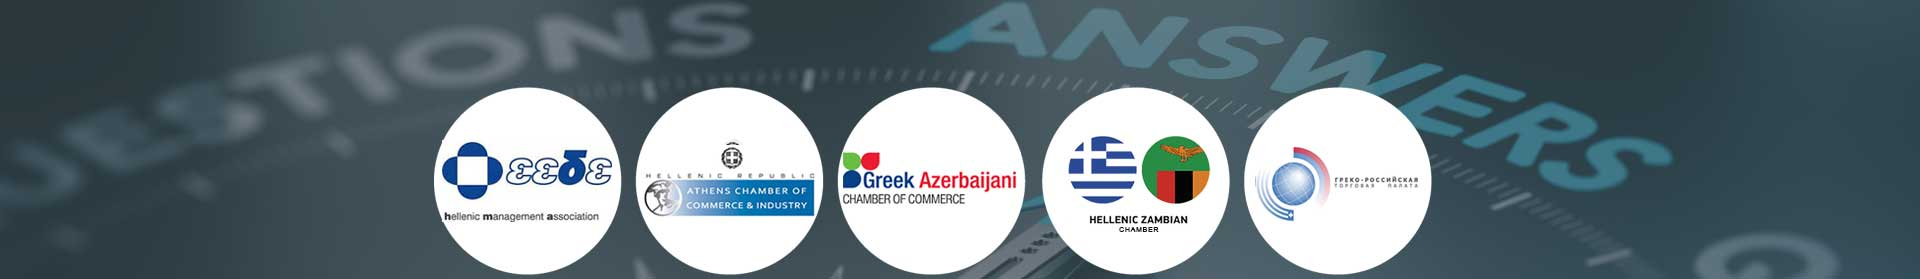 VK PREMIUM is a member of the following Chambers of Commerce